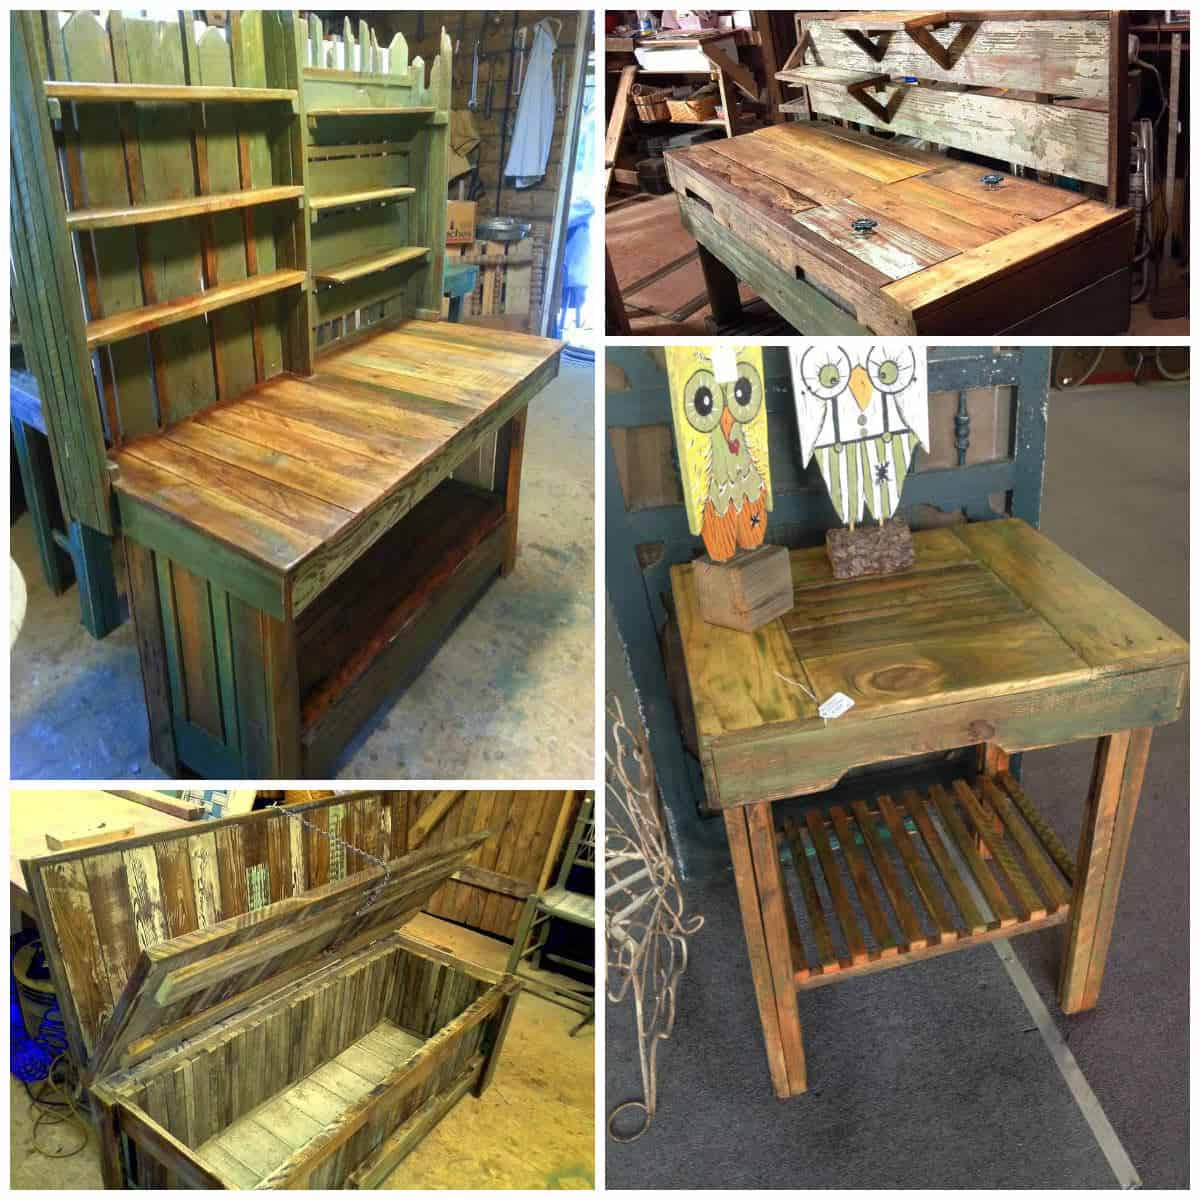 Rustic Pallet Furniture • Pallet Ideas • 1001 Pallets